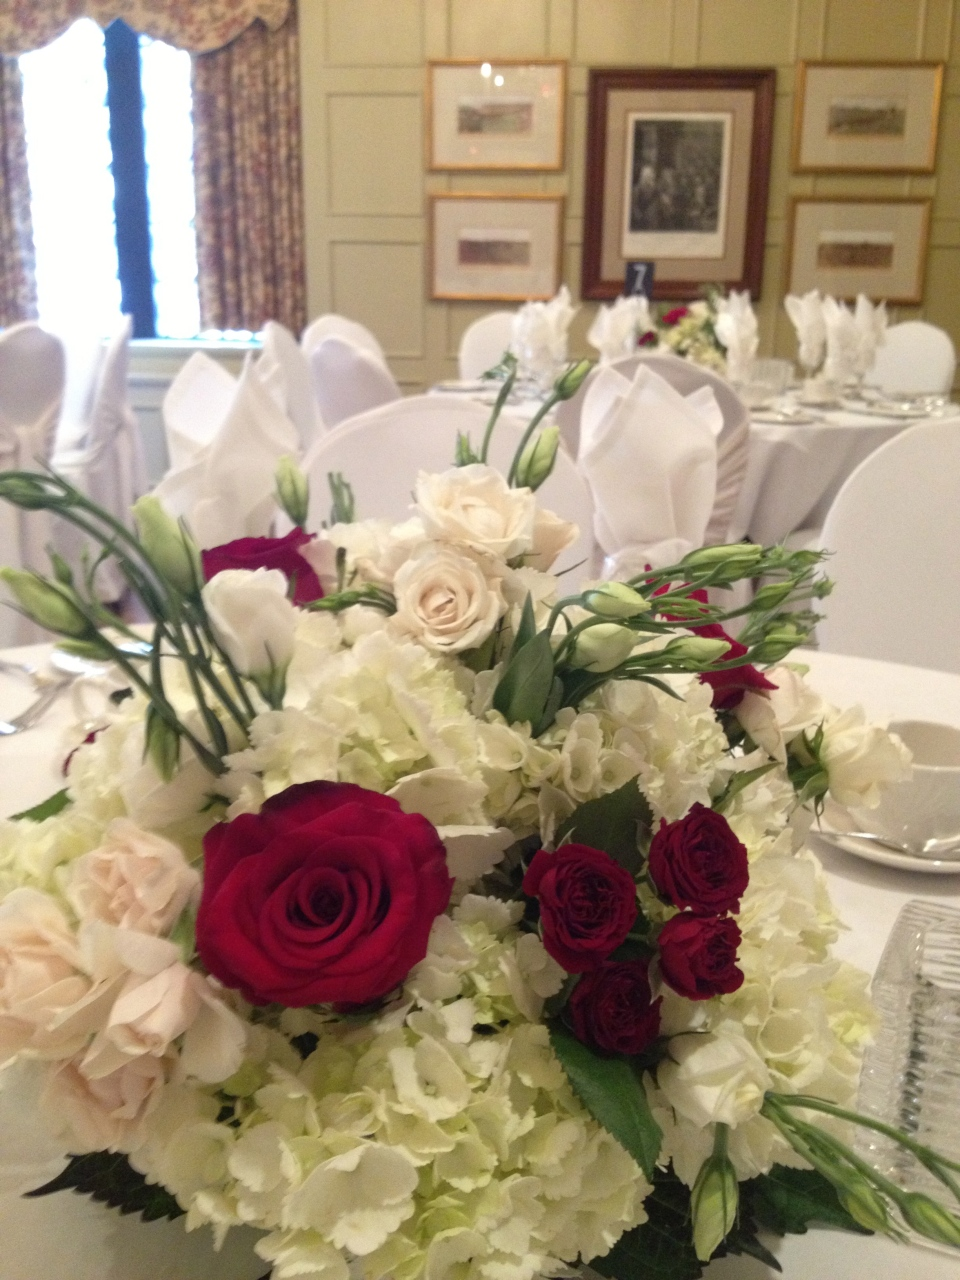 Garden inspired low centerpiece of hydrangea, roses, spray roses and lisianthus.